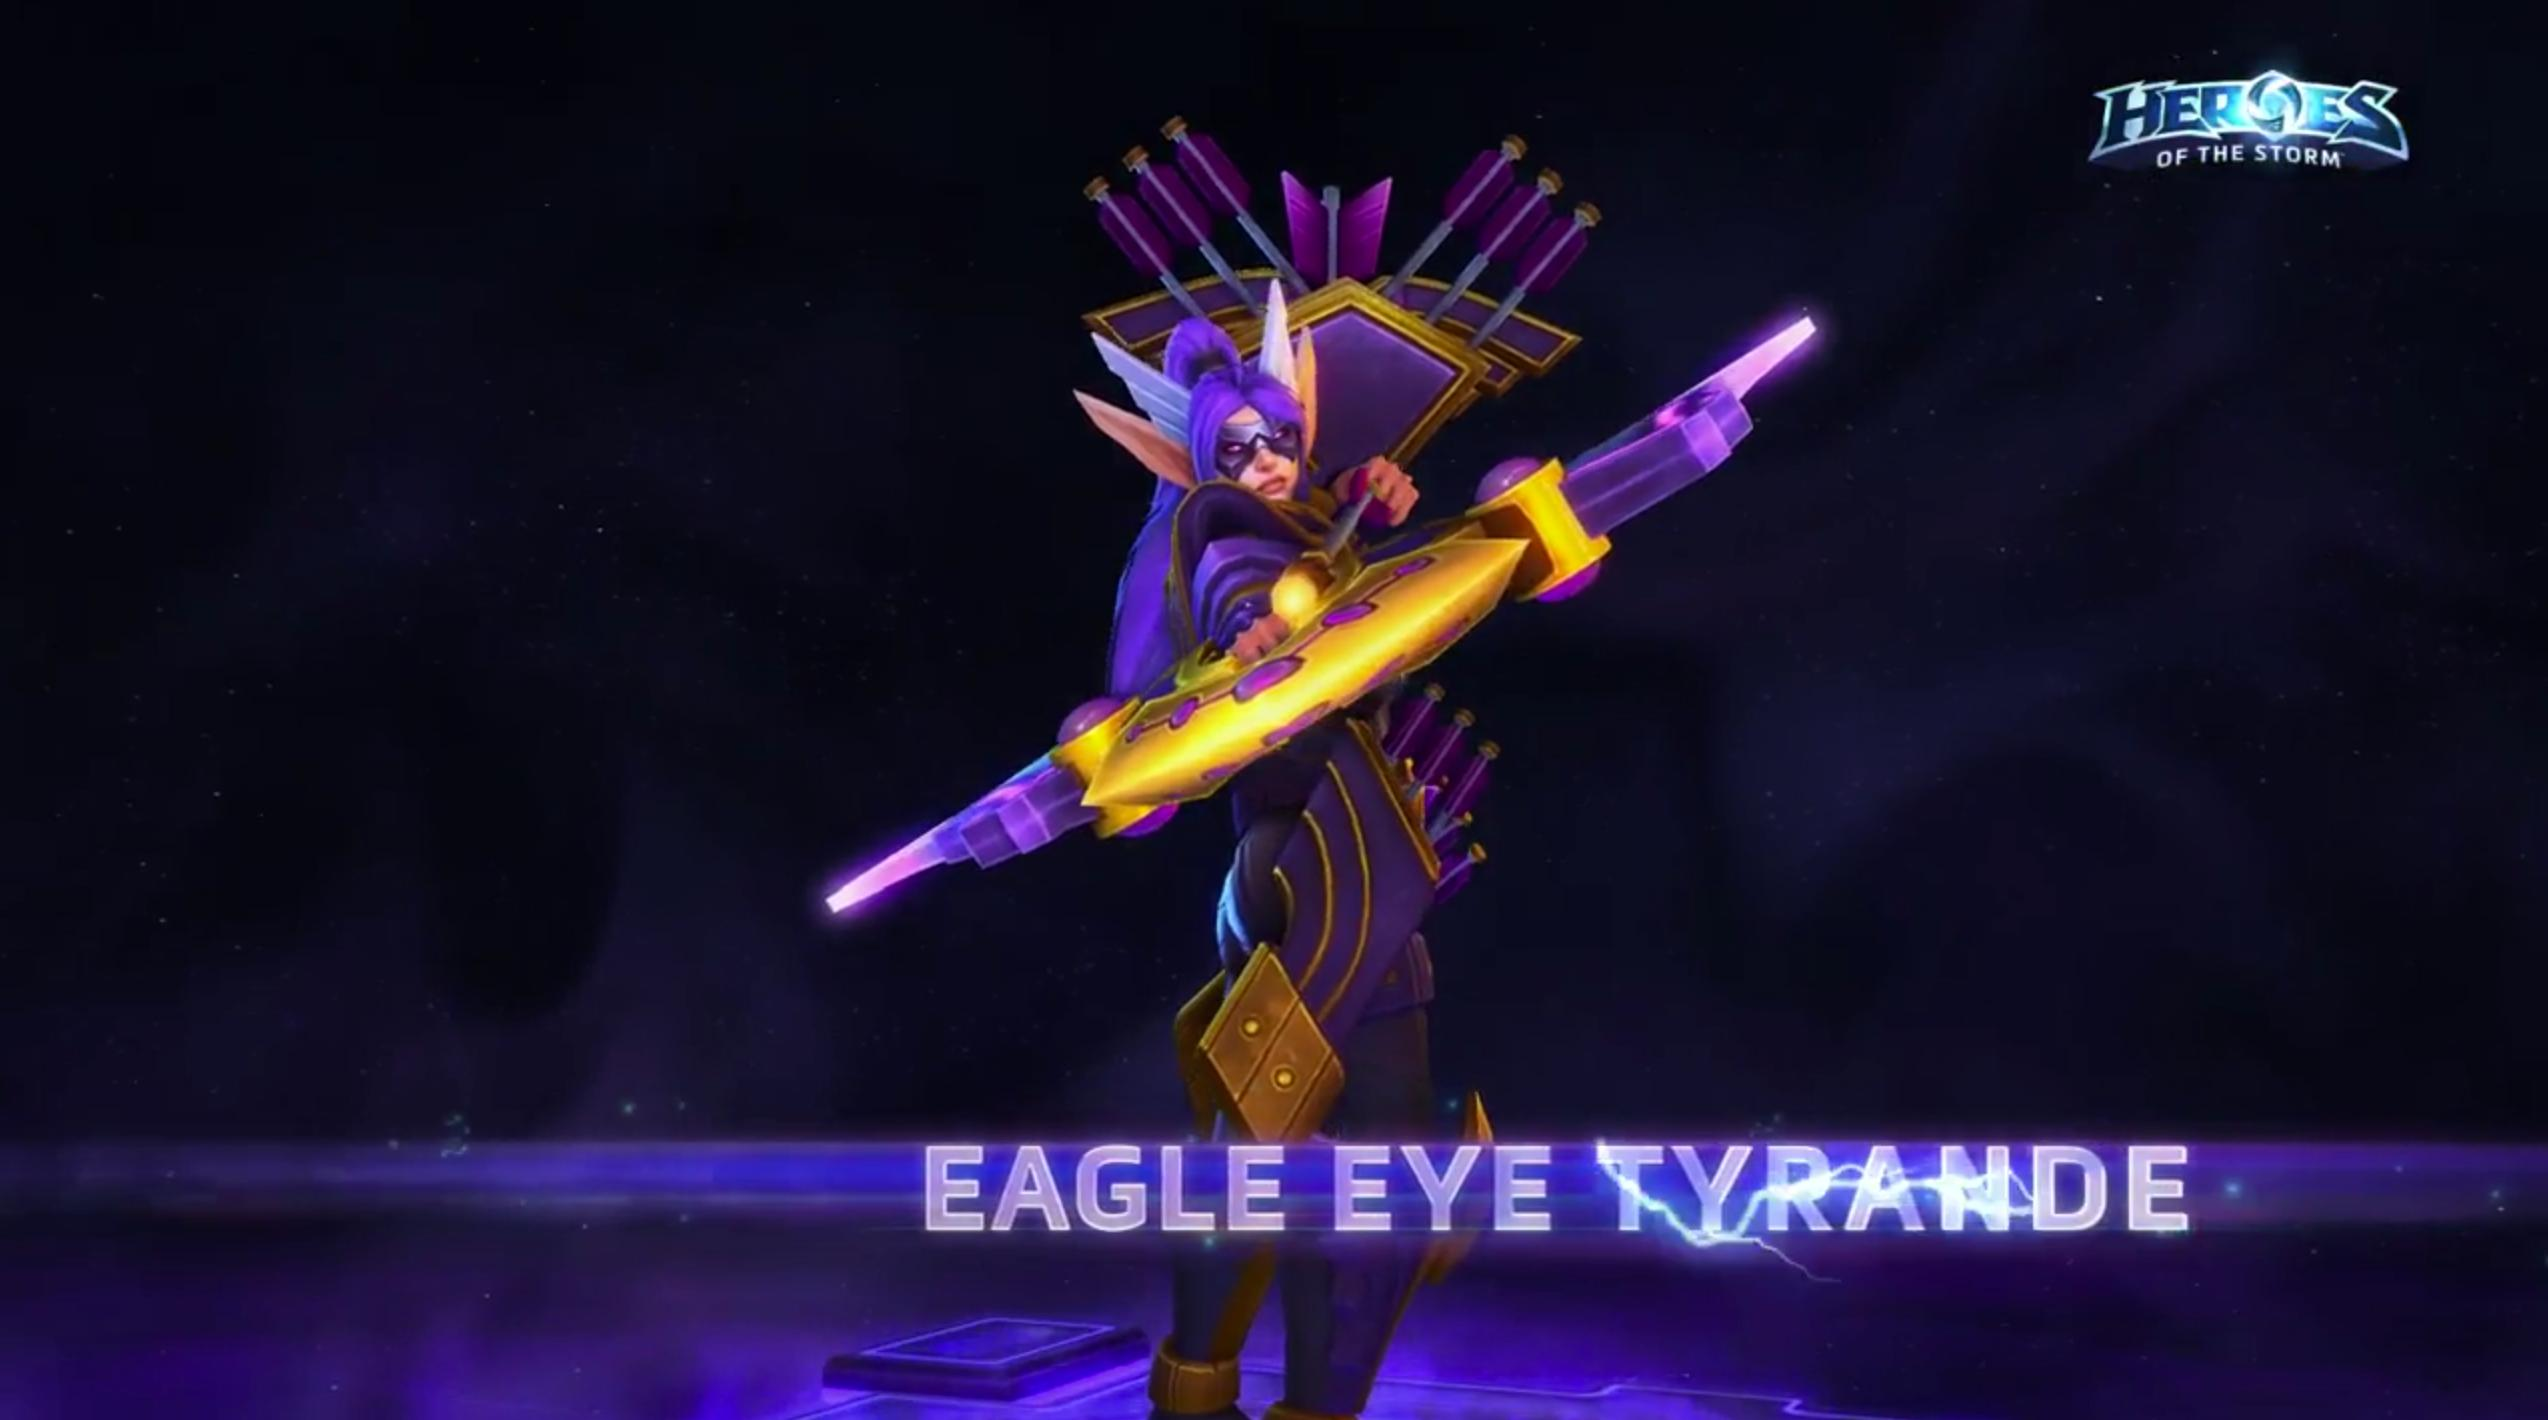 blizzard leaks info for upcoming heroes of the storm characters